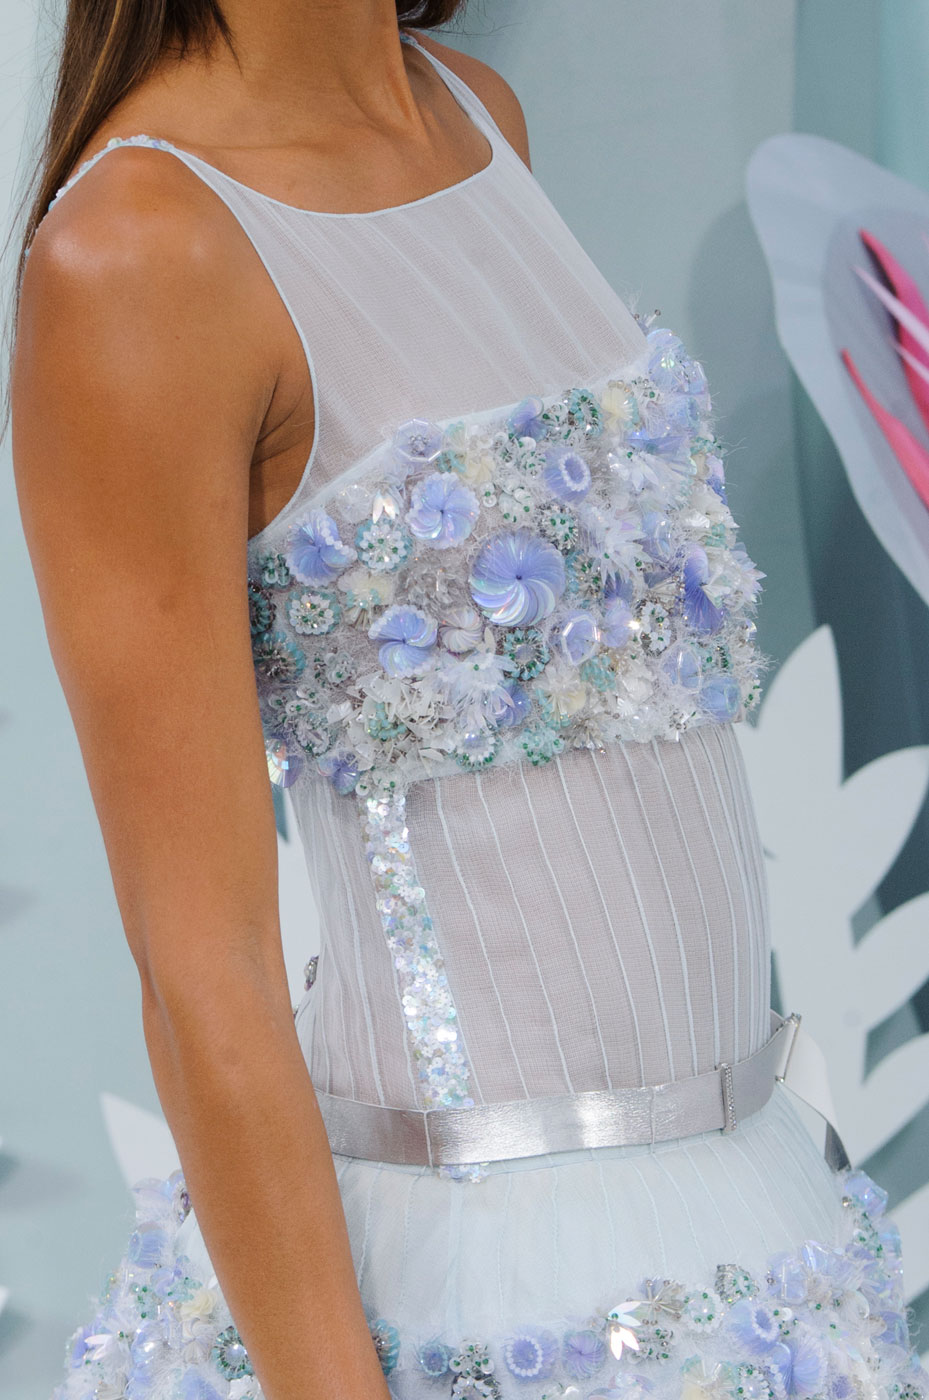 Chanel-fashion-runway-show-close-ups-haute-couture-paris-spring-summer-2015-the-impression-129